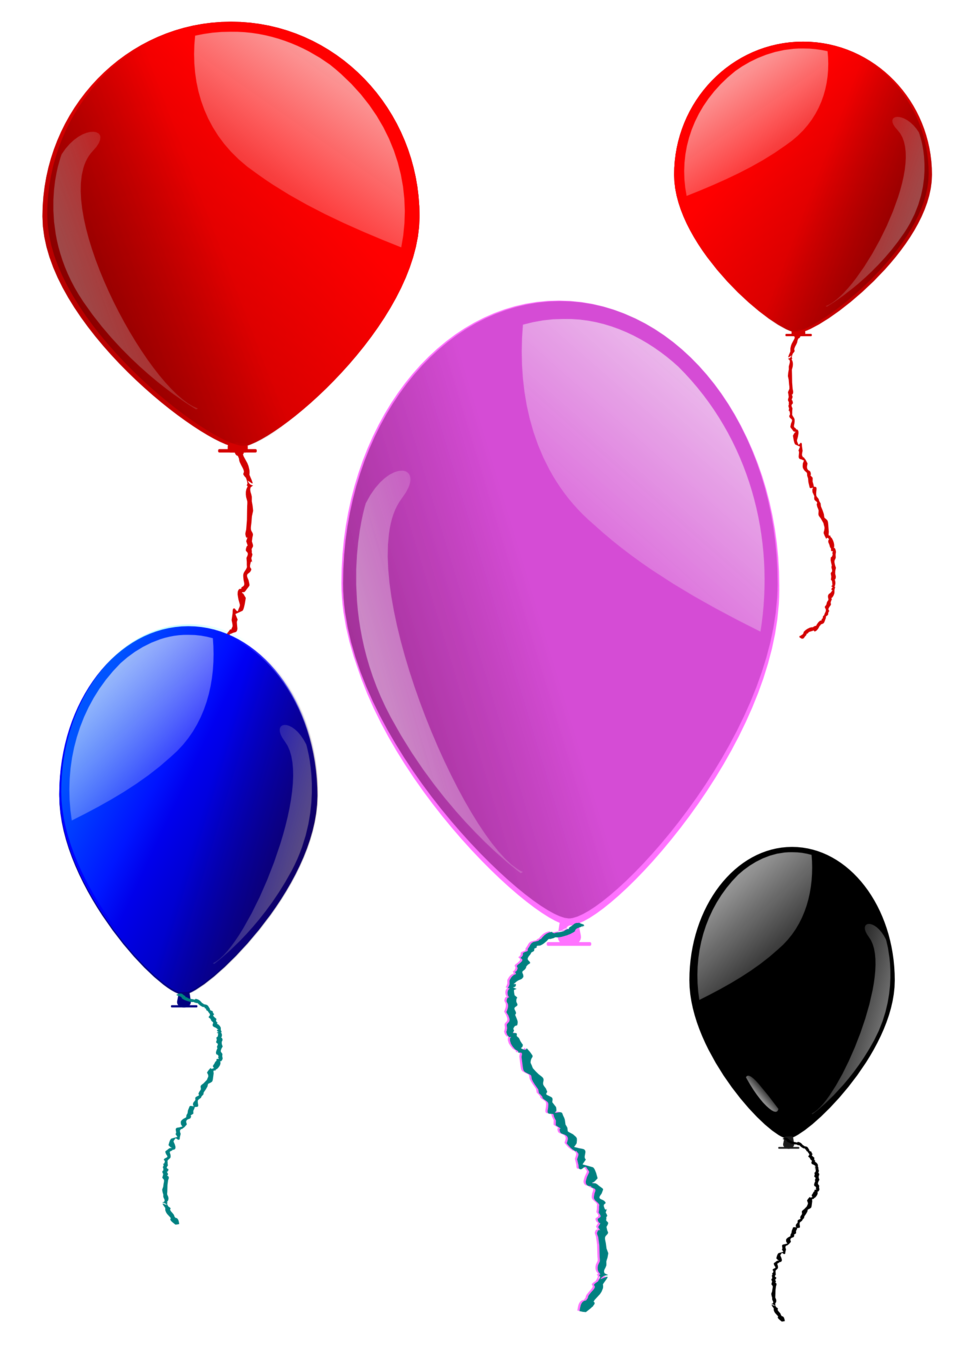 Some Balloons